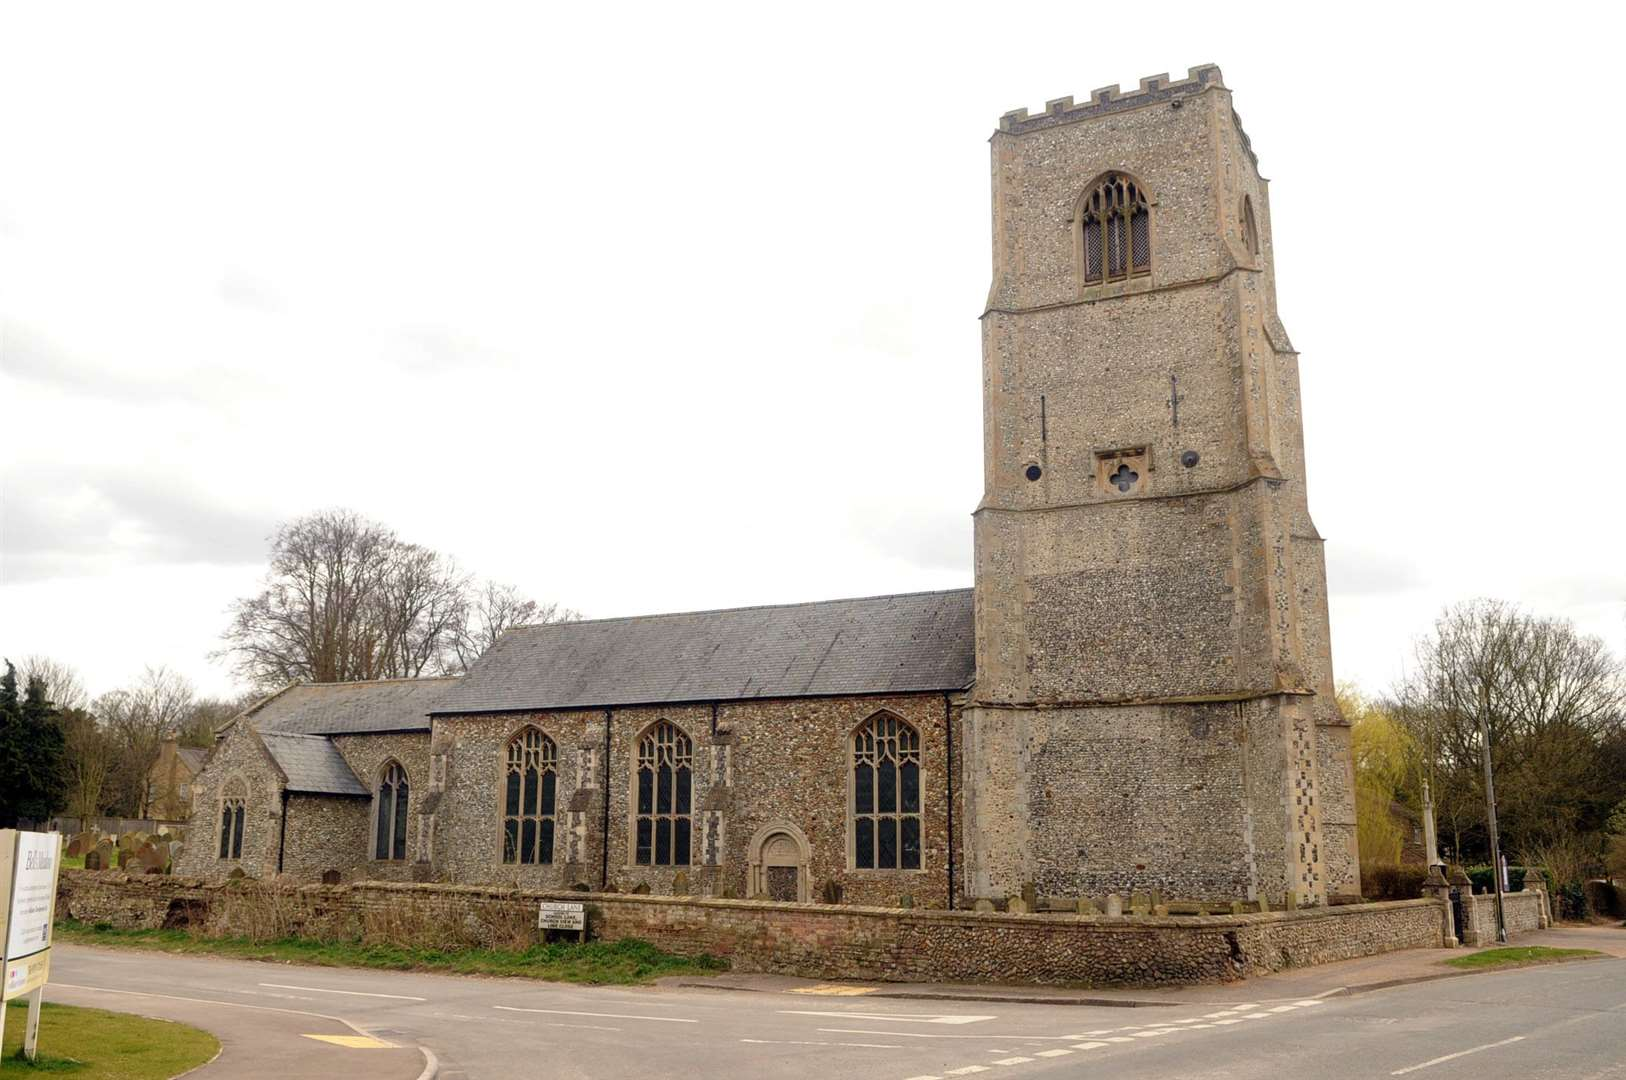 Marham's church remains closed due to Covid-19